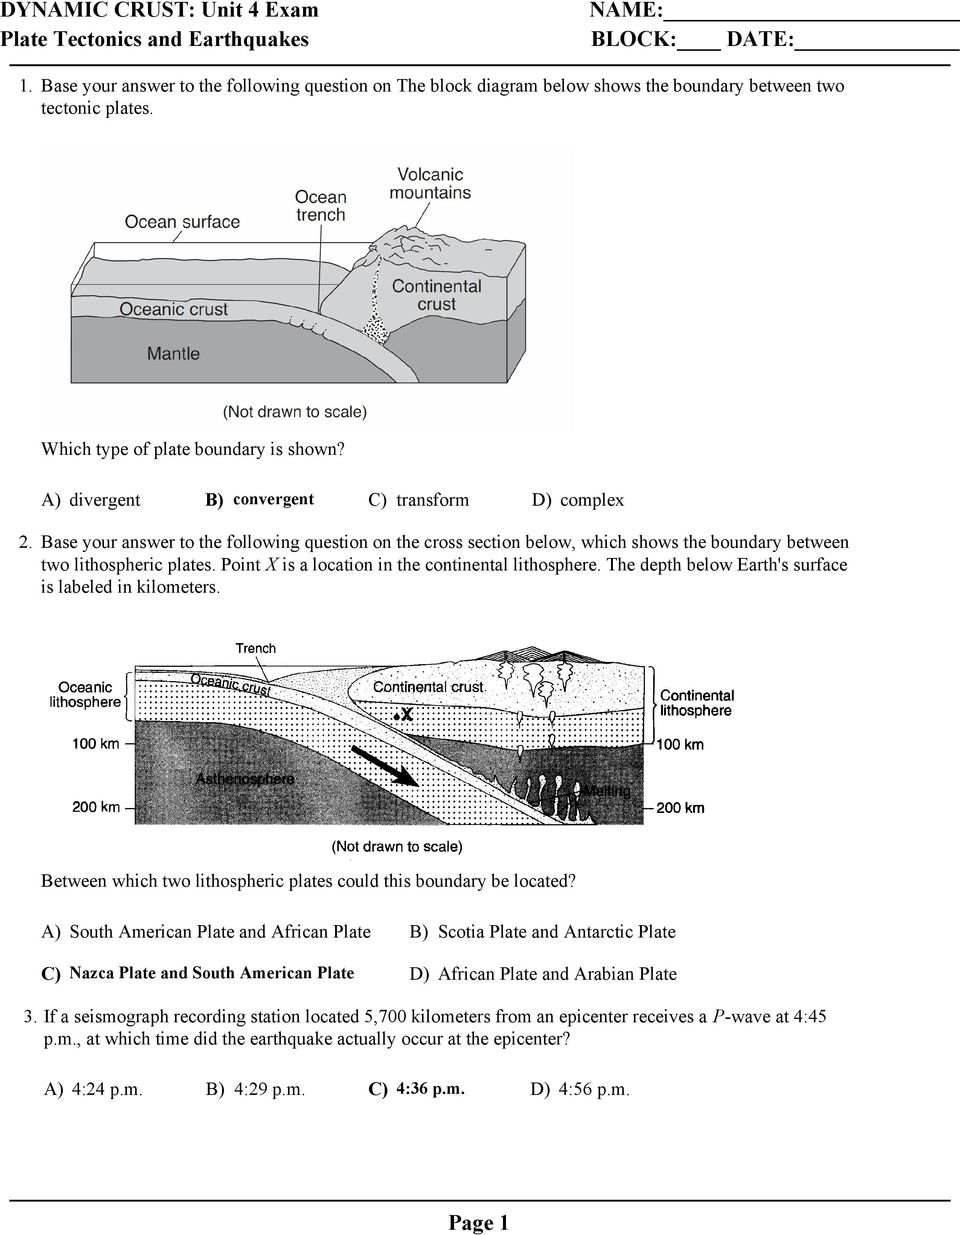 Base your answer to the following question on the cross section below, which shows the boundary between two lithospheric plates. Point X is a location in the continental lithosphere.